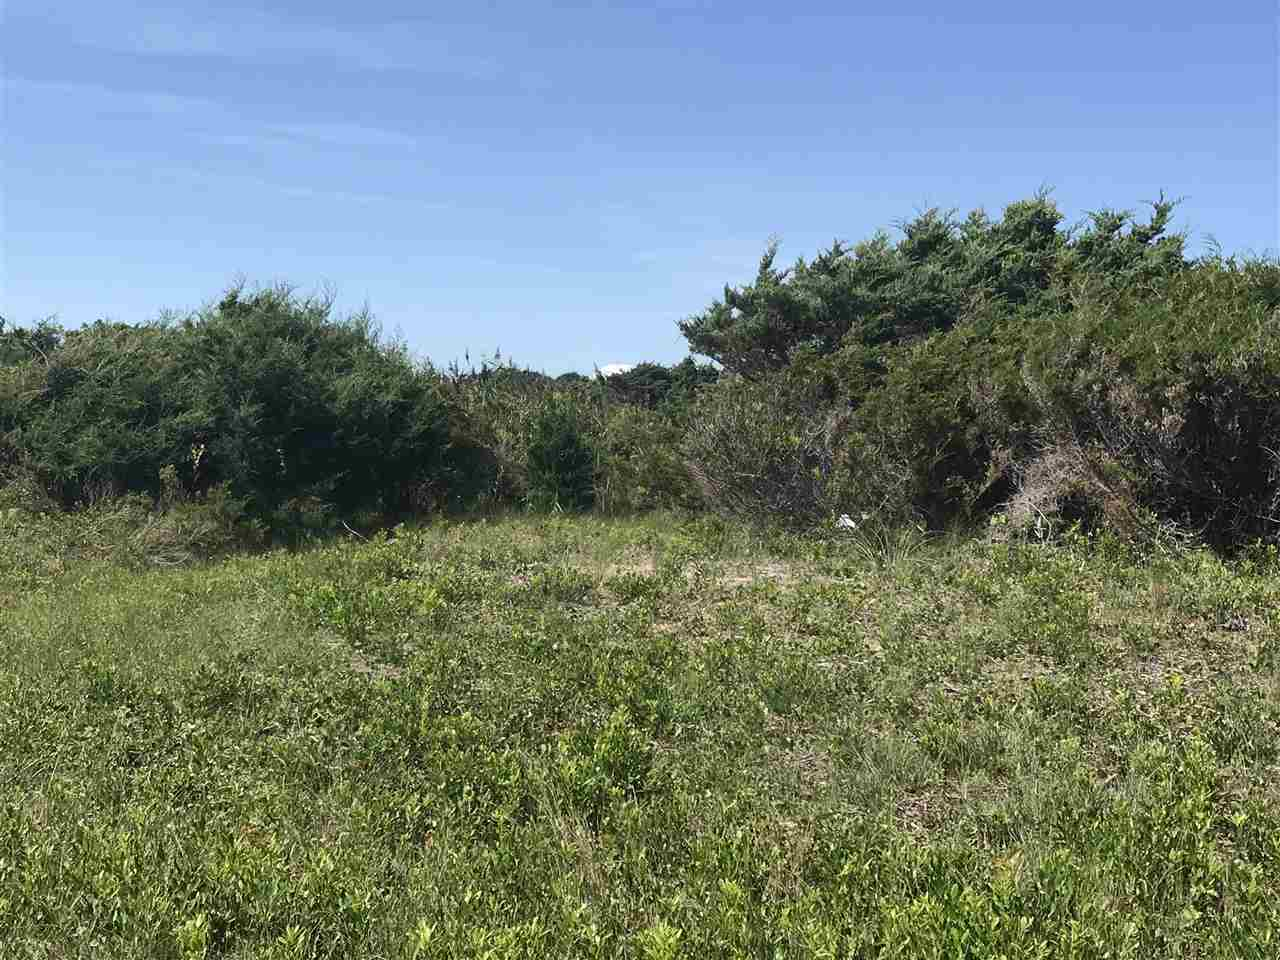 0 Lighthouse Road, Hatteras, NC 27943, ,Lots/land,For sale,Lighthouse Road,92890